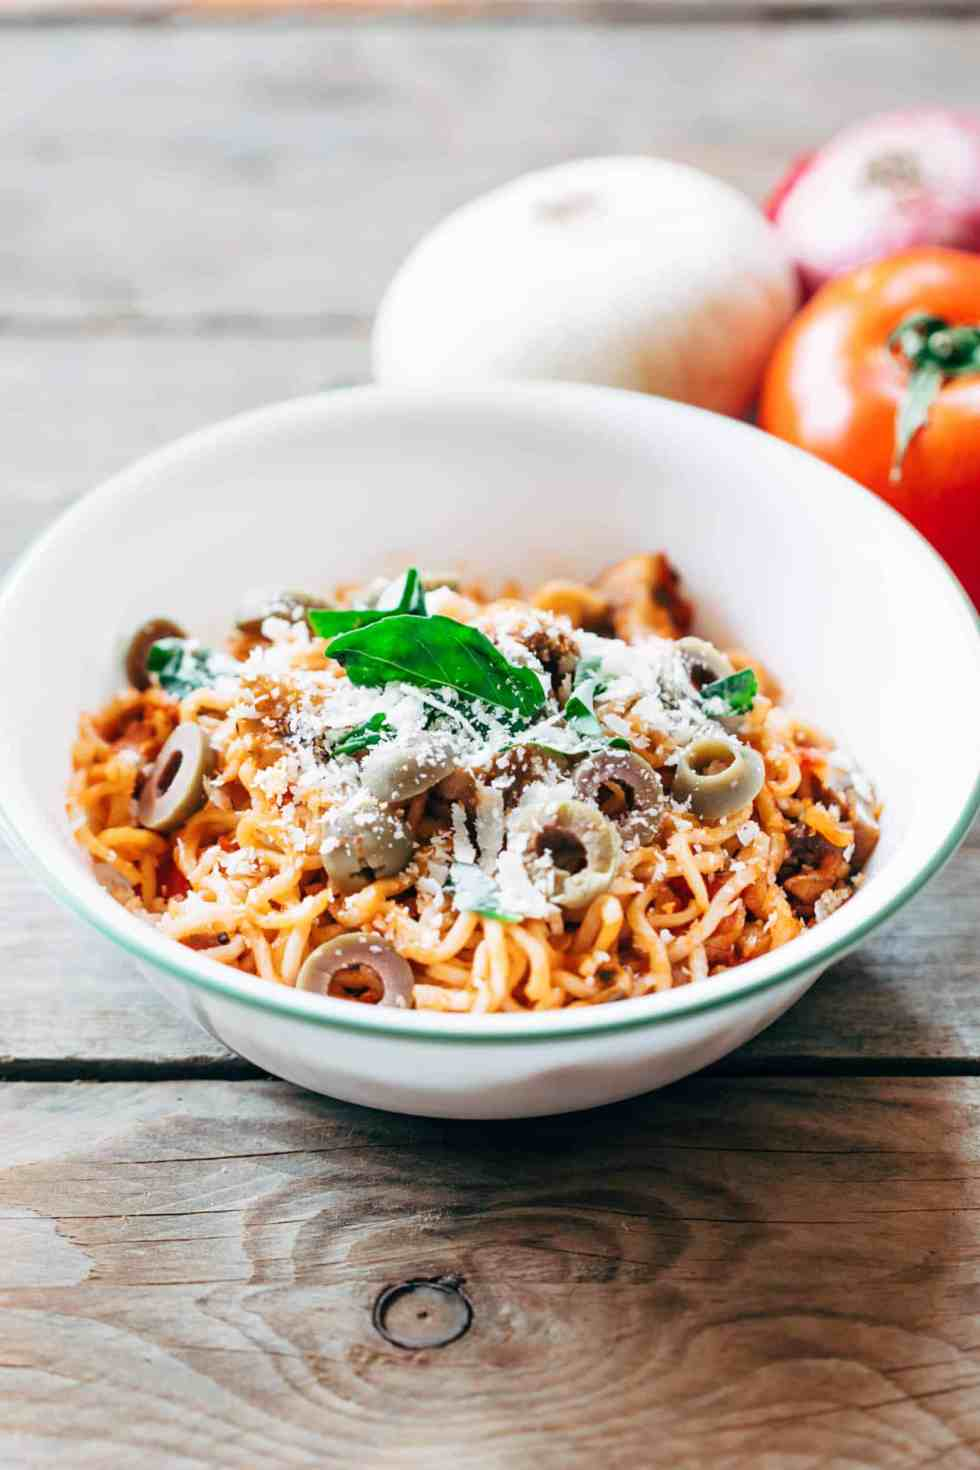 Italian Maggi recipe has all the flavours of your favourite pasta and pizza with mushrooms, marinara sauce, olives, basil and lots of cheese. Here are four amazing maggi recipes in one post that you must try - Italian Maggi, Cheese and Egg Maggi, Chinese Maggi and Spicy Masala Maggi for all your Maggi lovers!